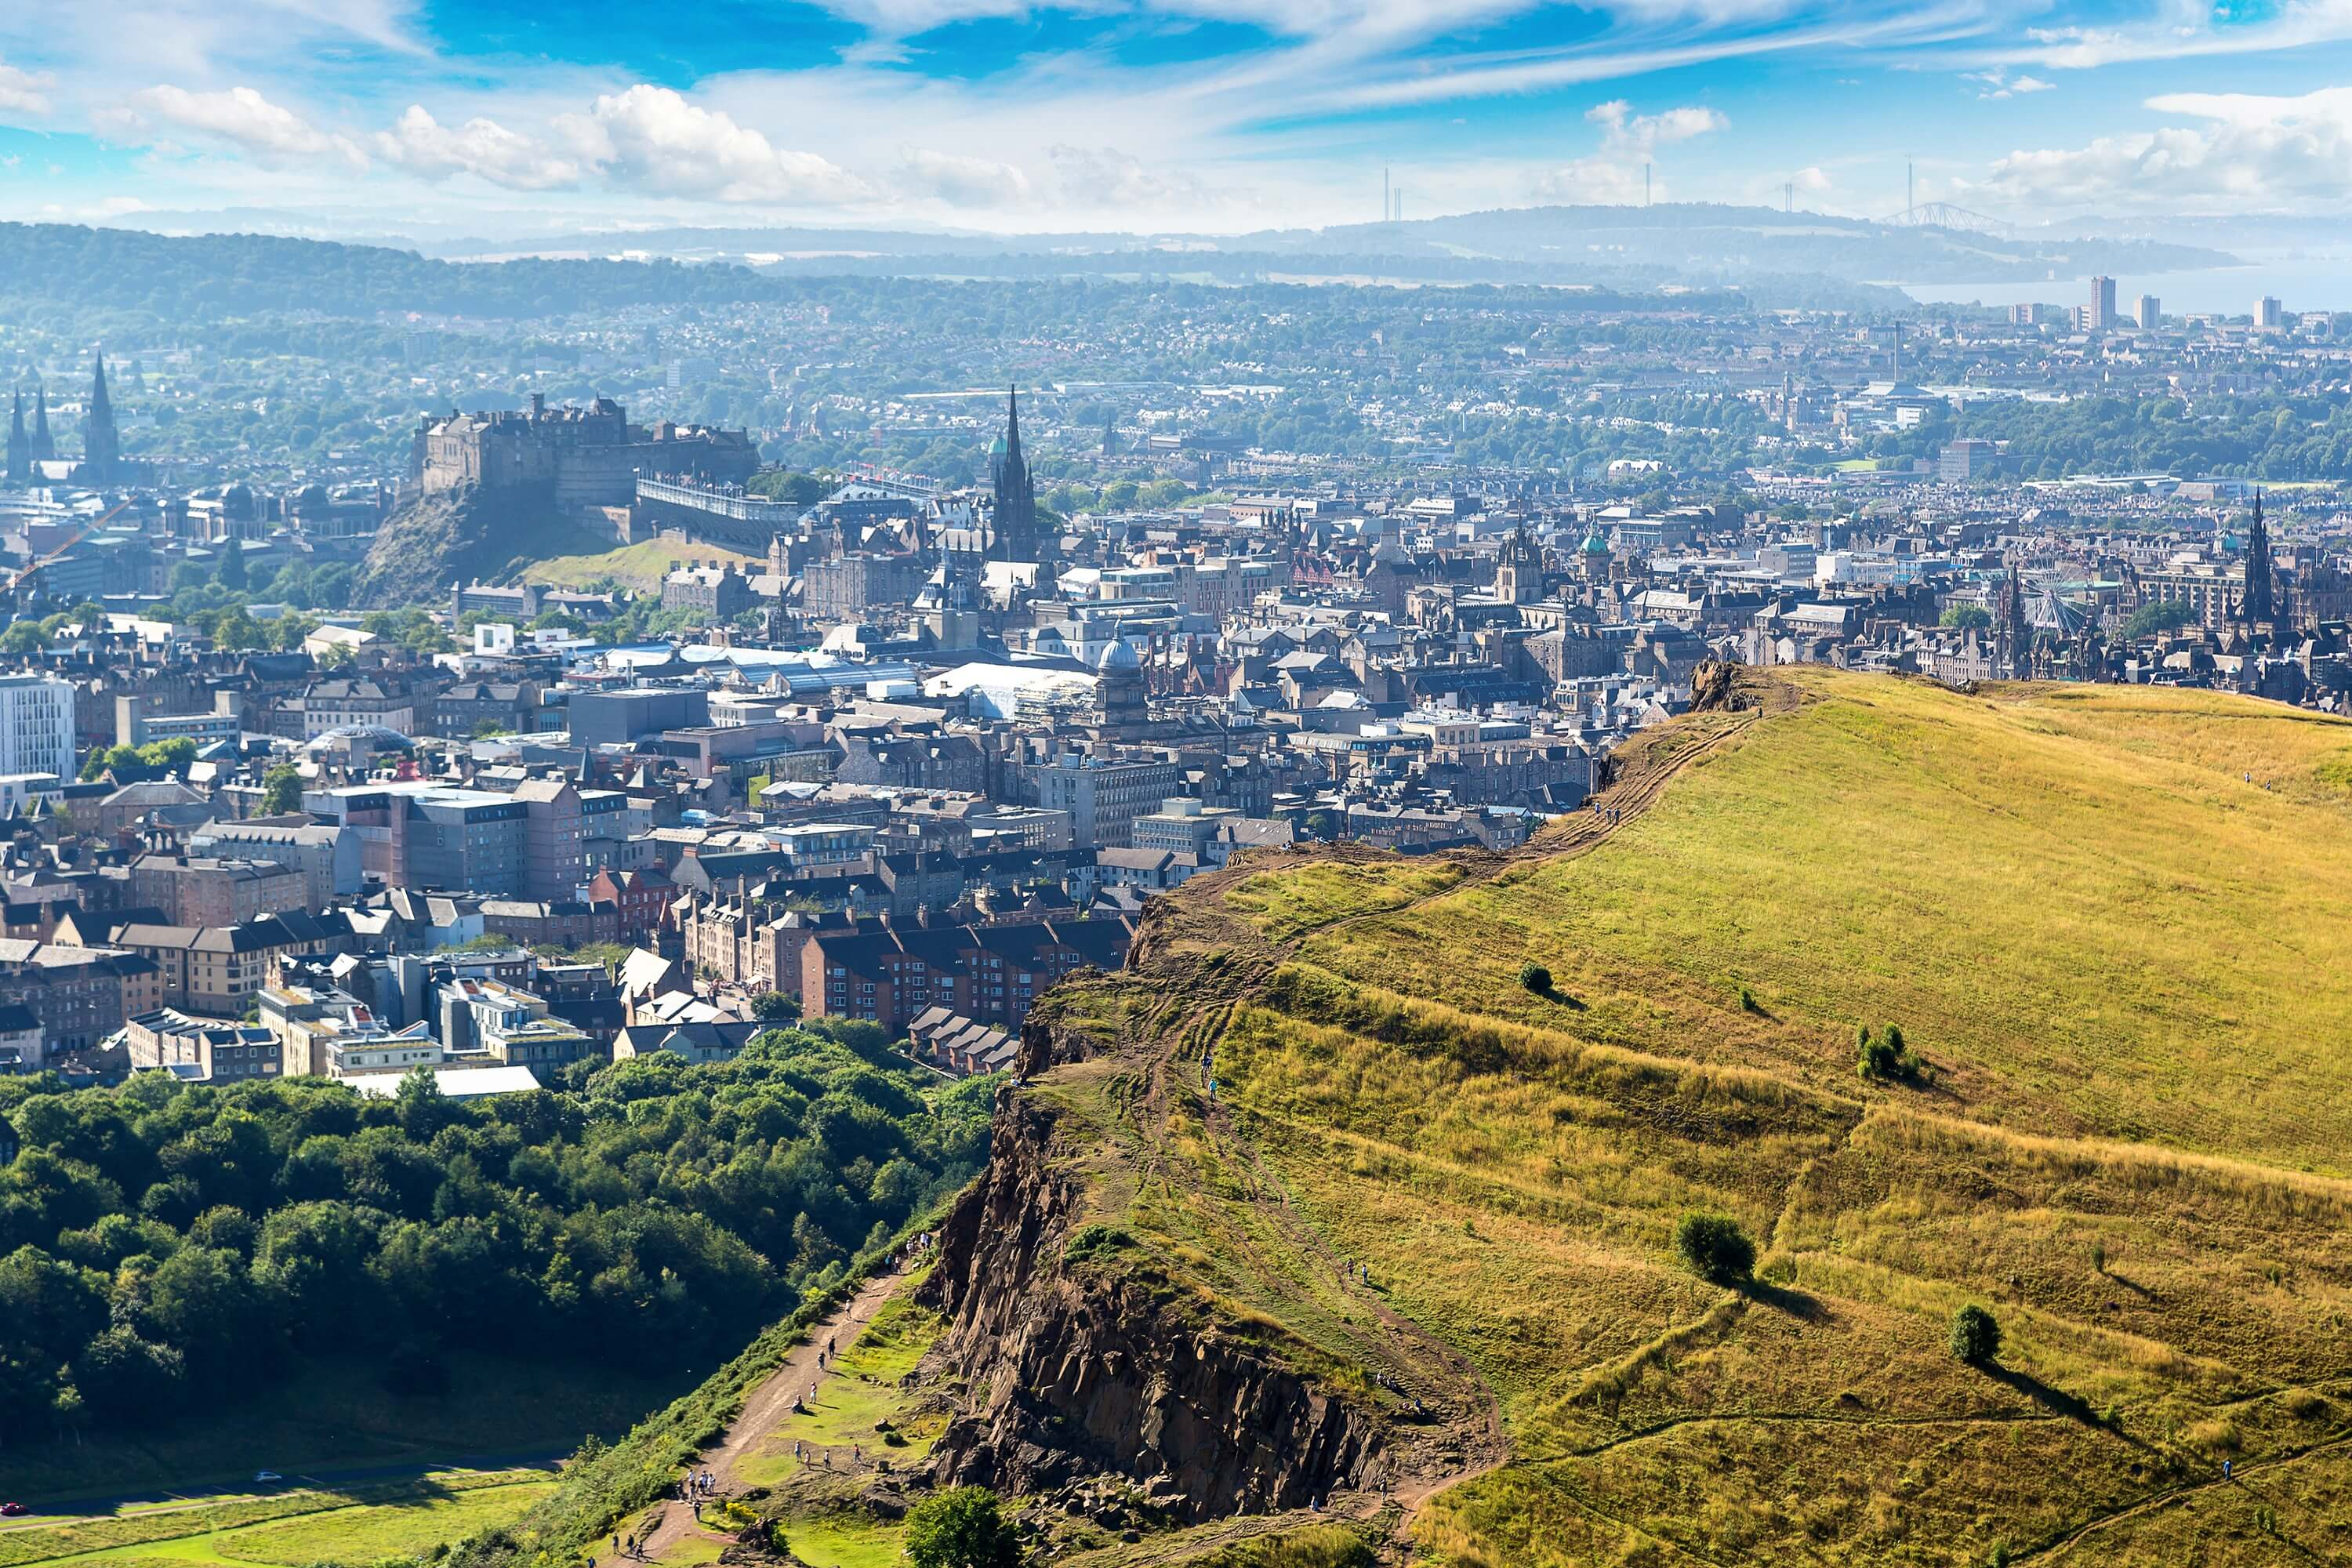 7 day Edinburgh itinerary for female solo travelers - Arthur's Seat